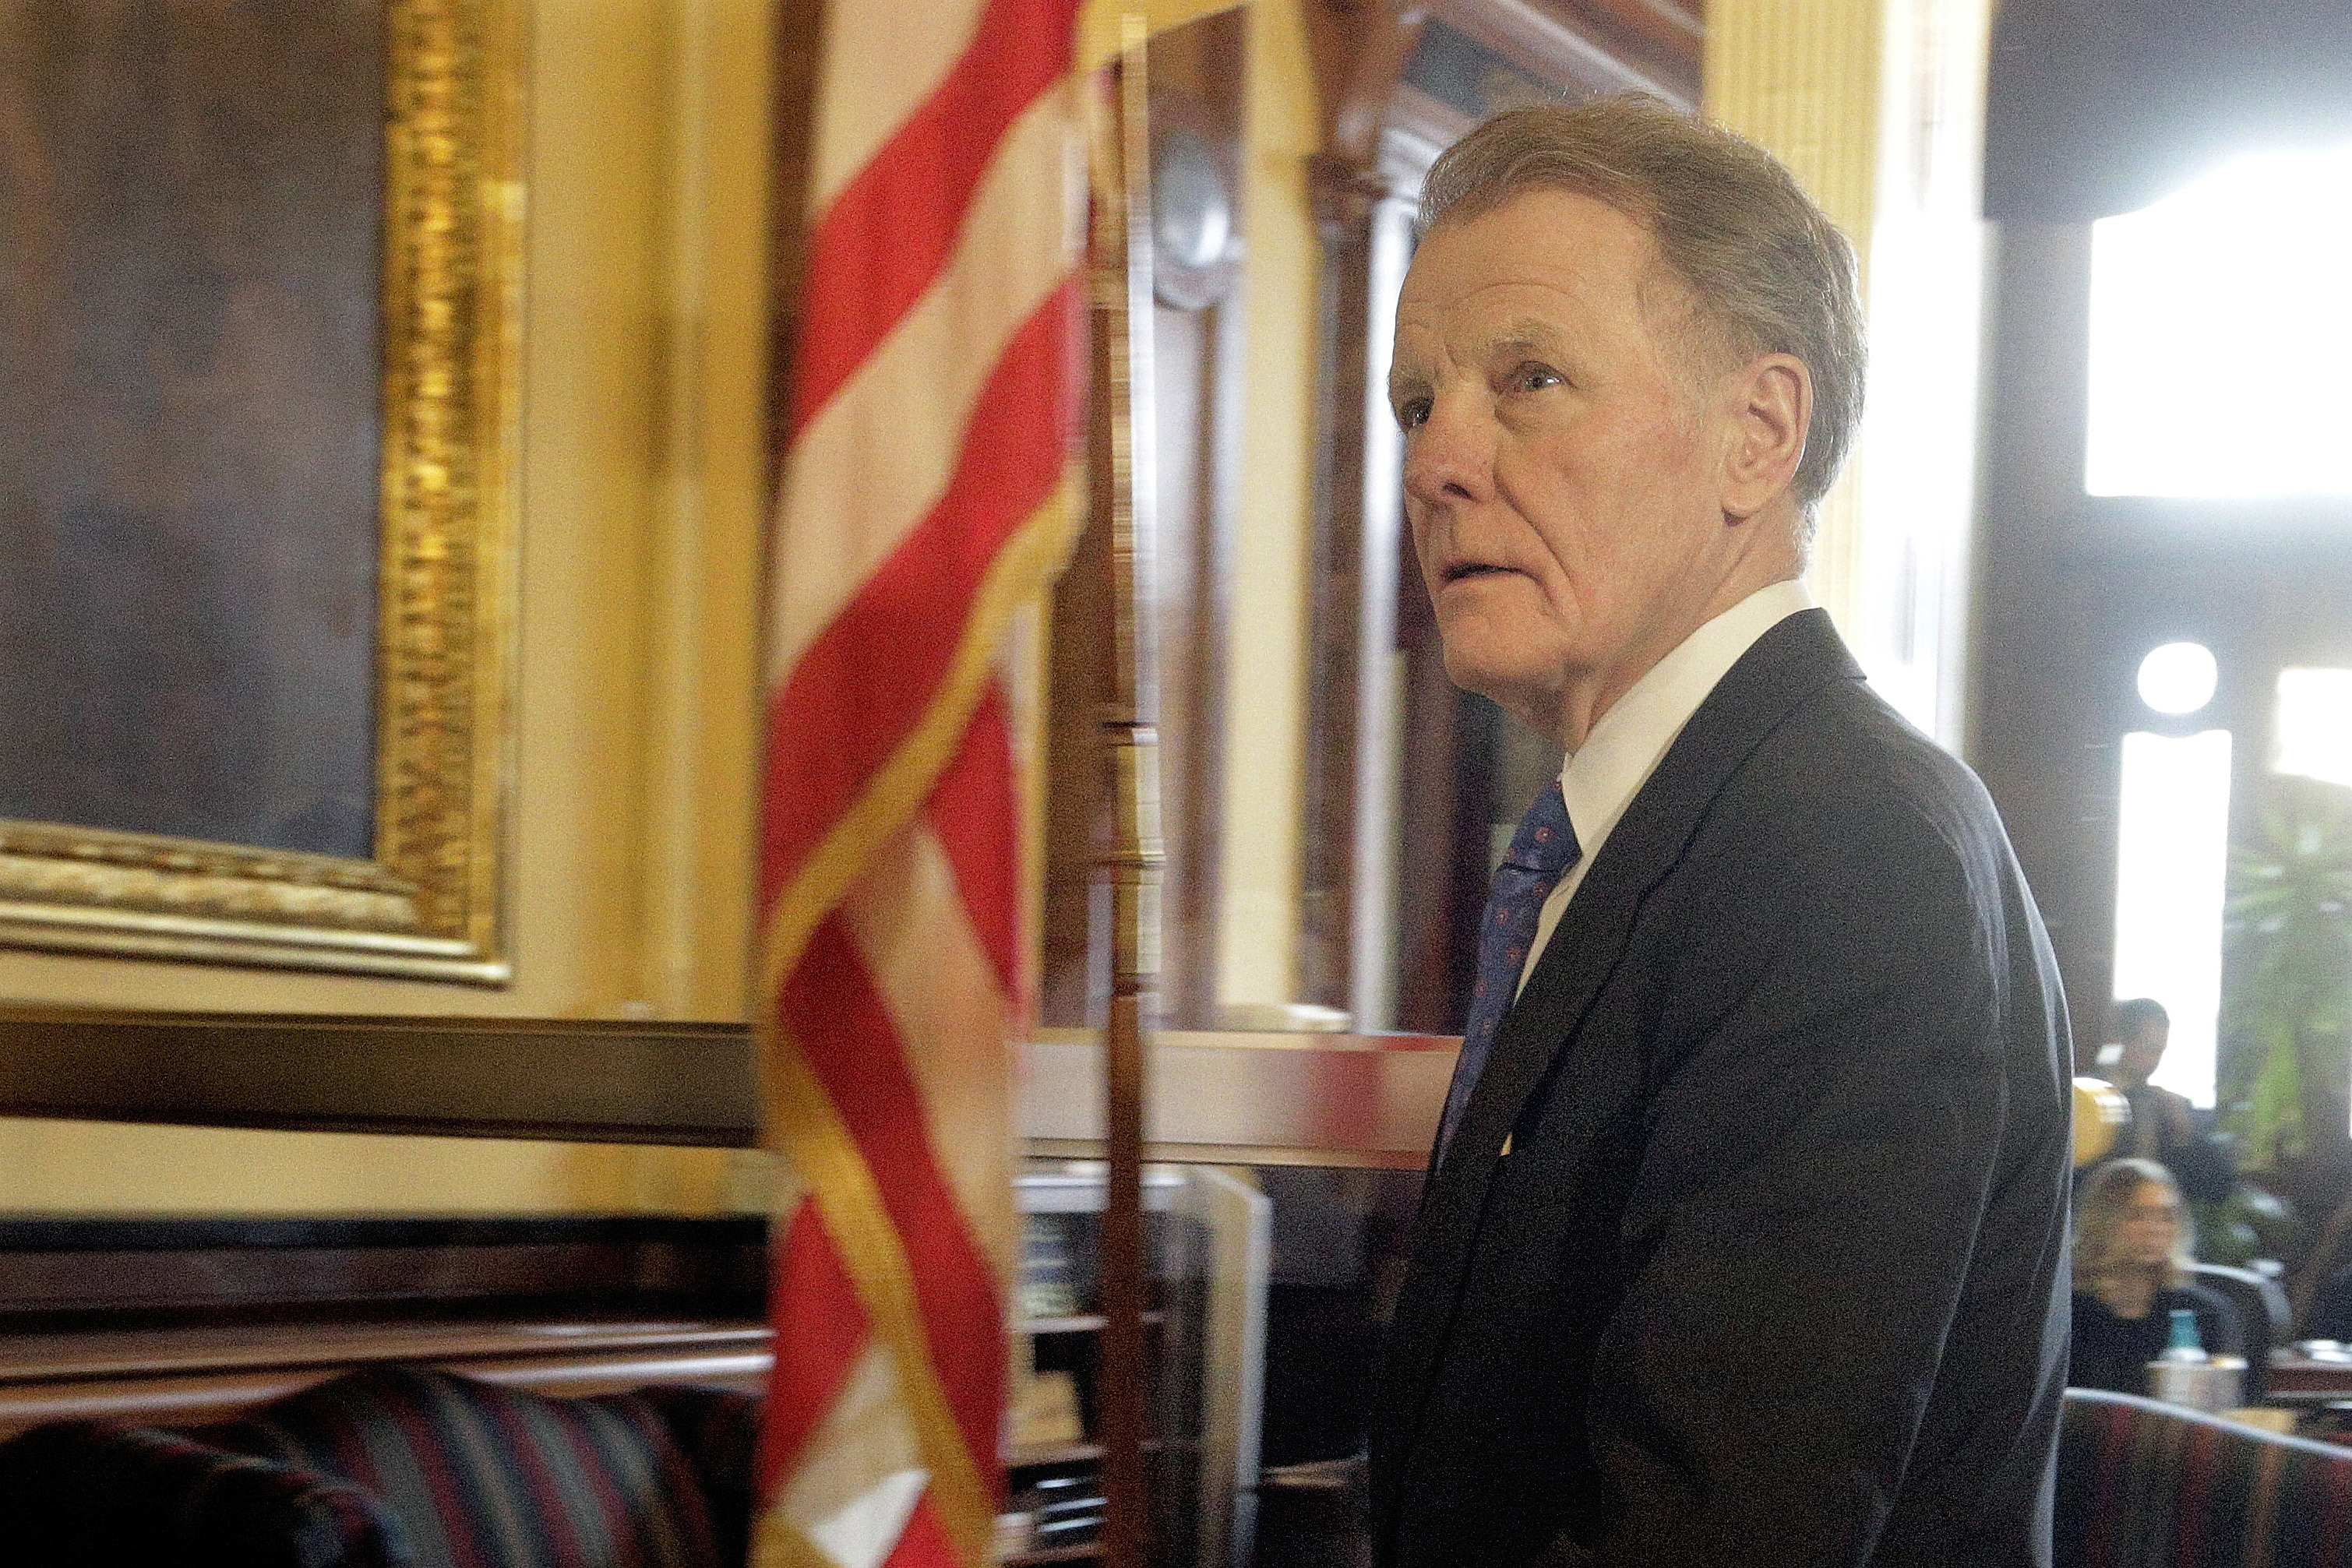 Illinois Speaker of the House Michael Madigan, D-Chicago, walks out of Illinois Gov. Bruce Rauner's office during veto session at the Illinois State Capitol on Nov. 30, 2016, in Springfield, Ill. (Seth Perlman/Associated Press)